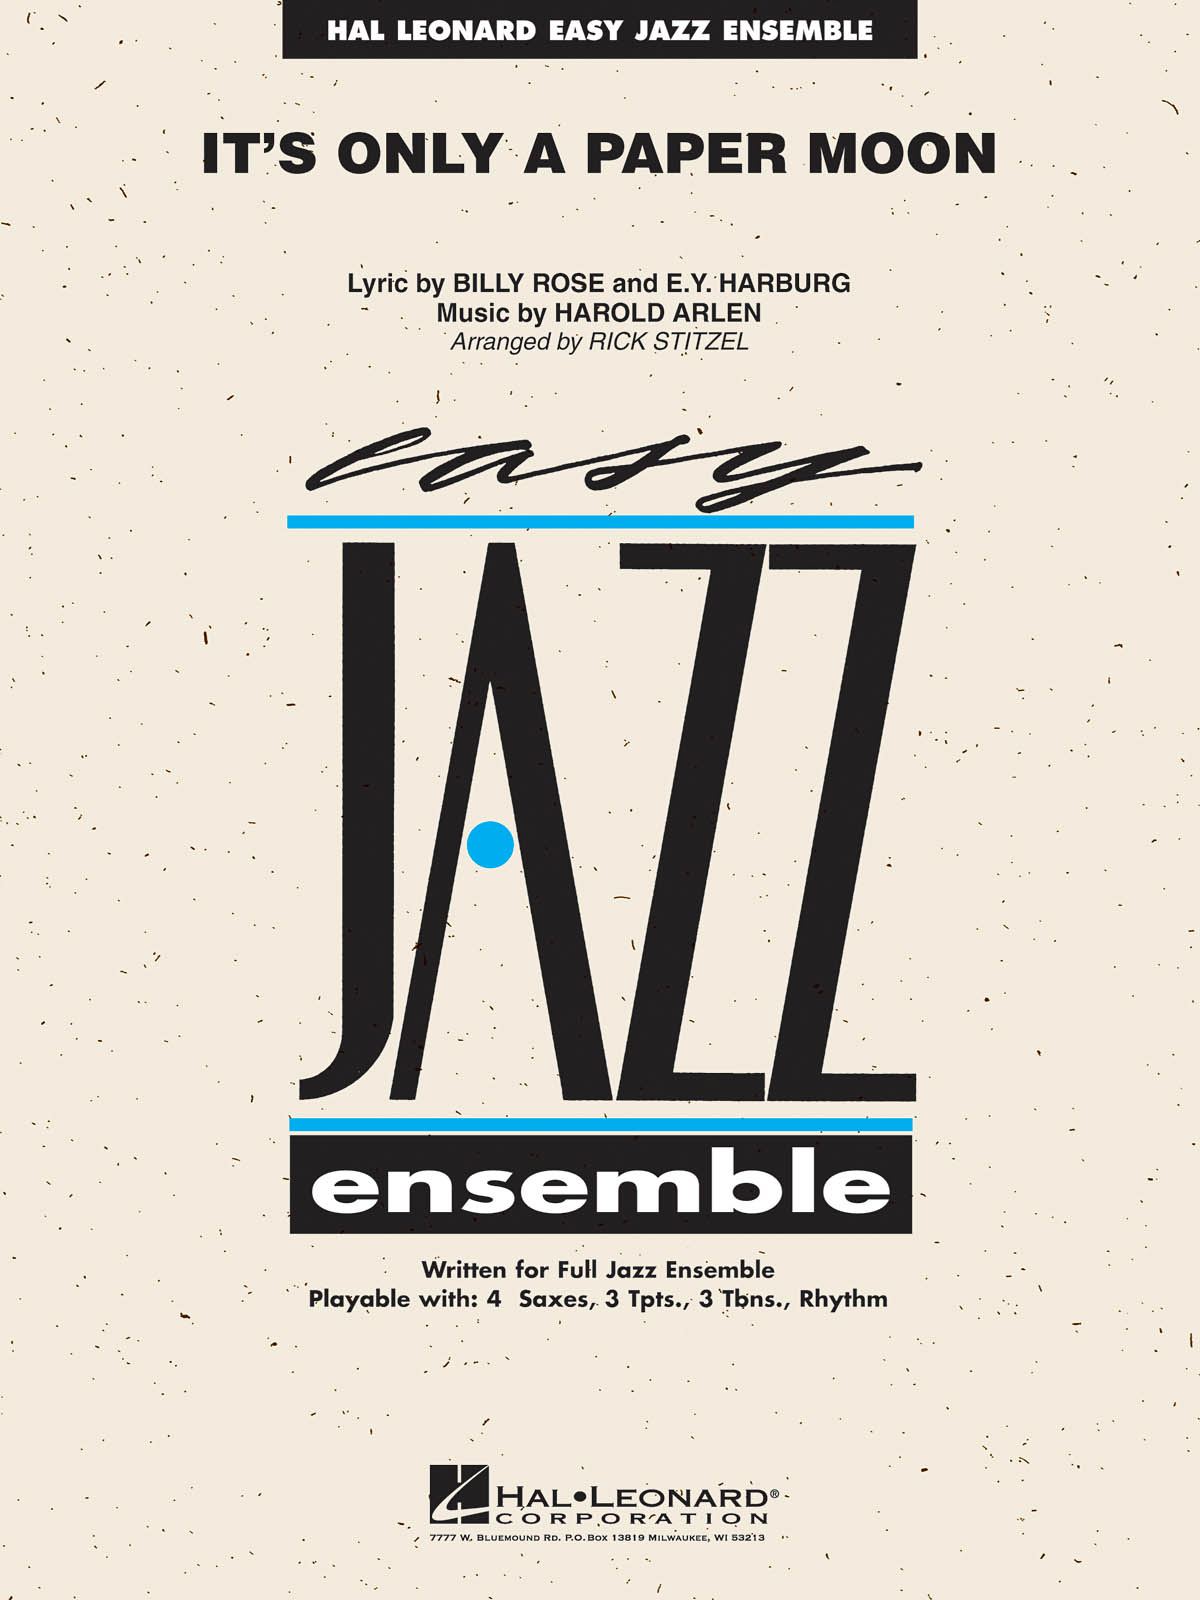 Billy Rose Yip Harburg Harold Arlen: It's Only a Paper Moon: Jazz Ensemble and